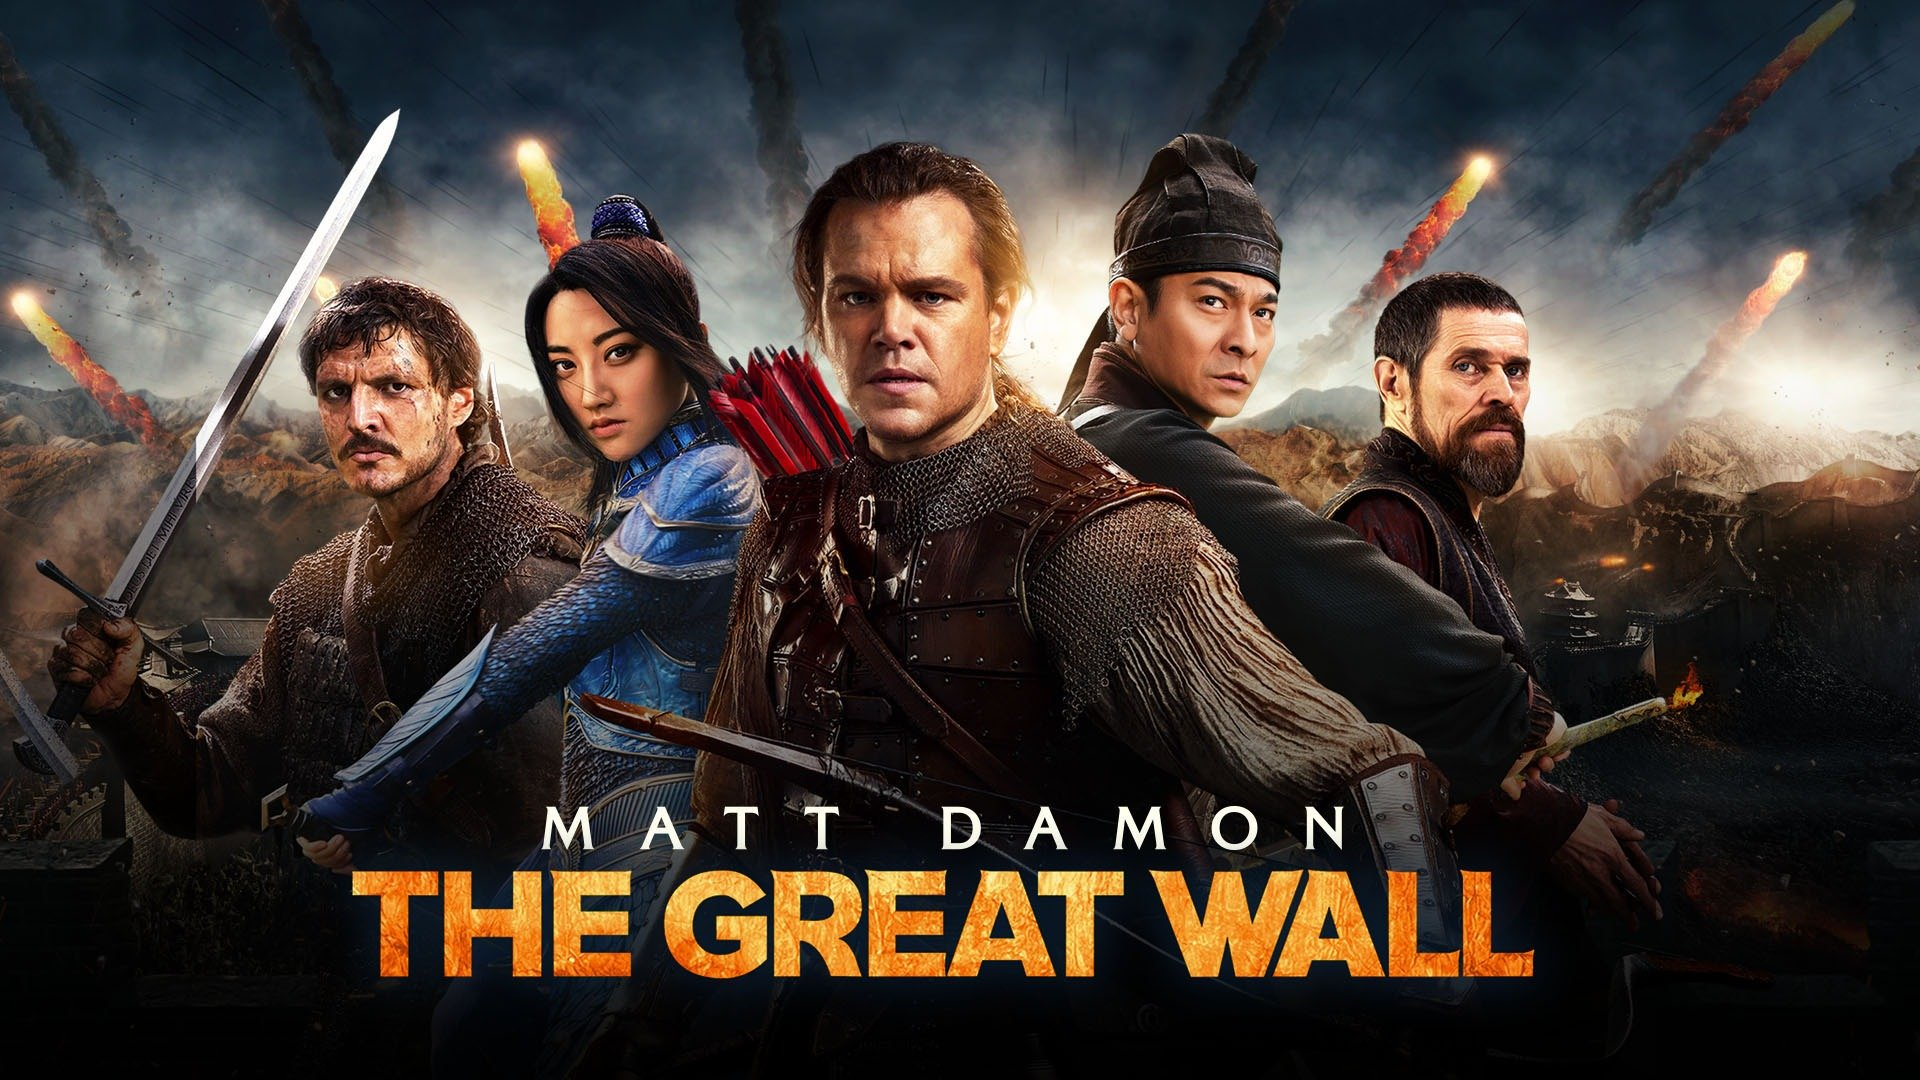 The Great Wall Movietickets